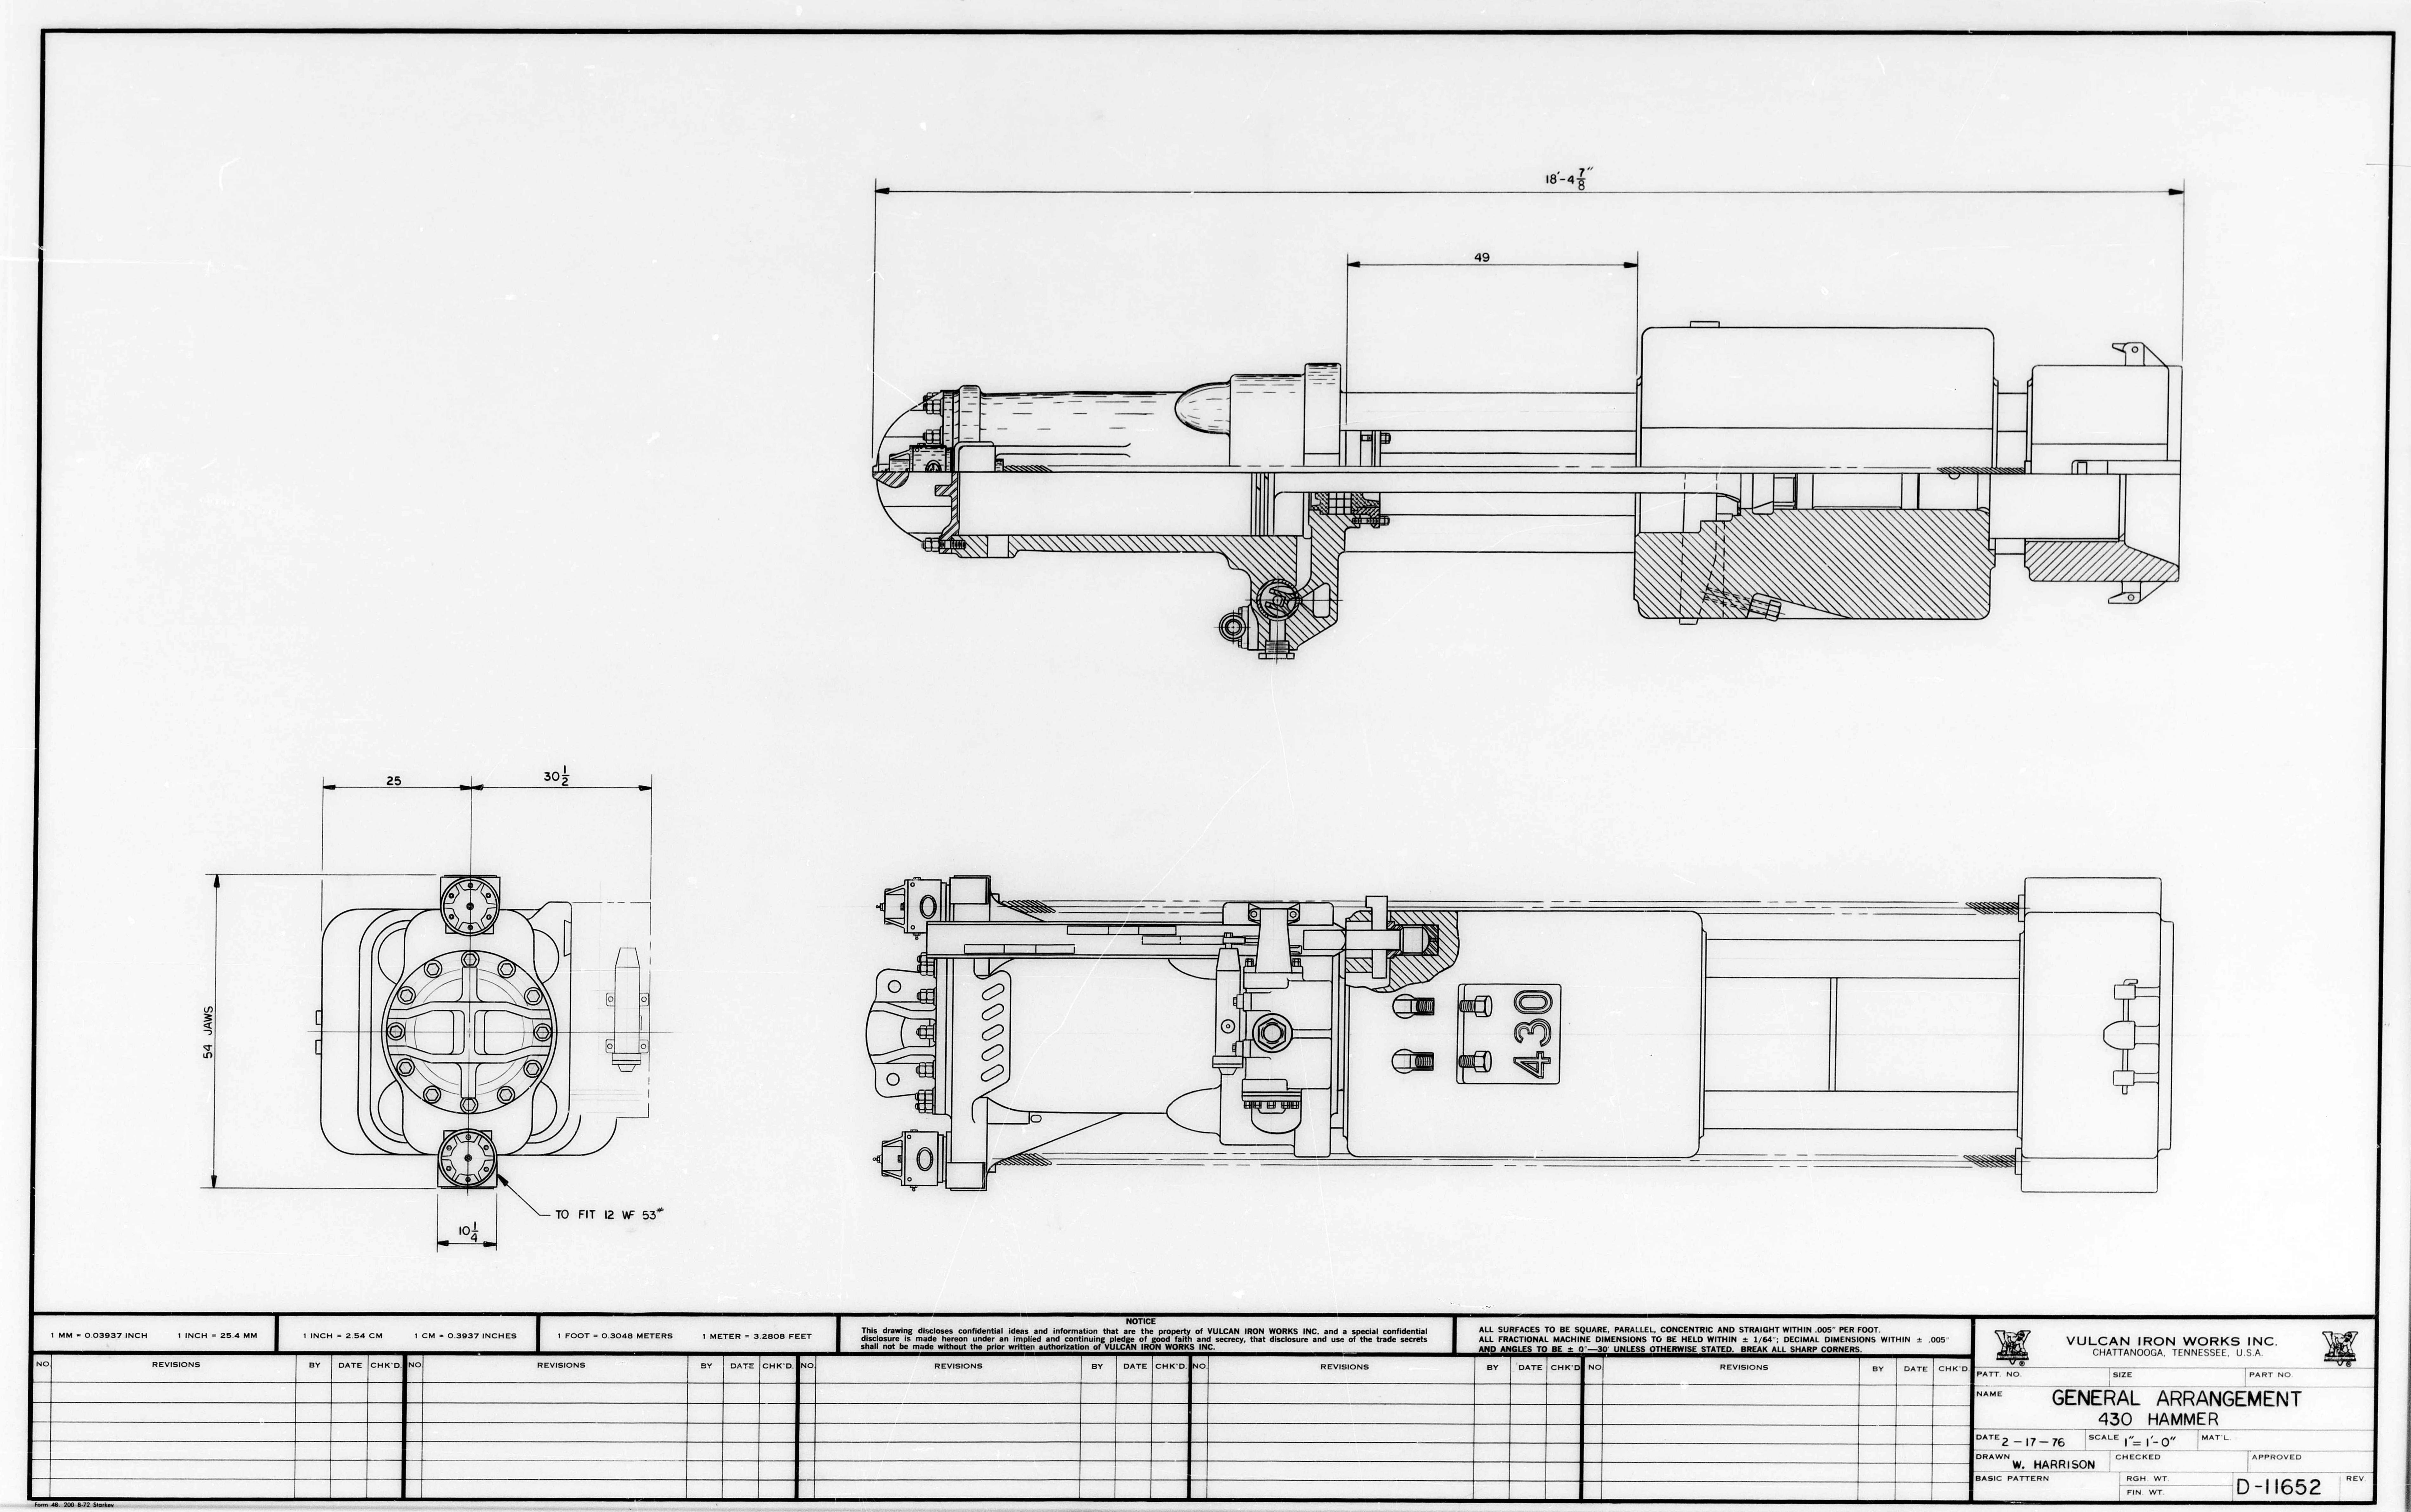 Vulcan 810 Hydraulic Wiring Diagram Great Installation Of Motor Proposed Hammers During The 1960 S And 1970 Vulcanhammer Info Rh Pump Circuit